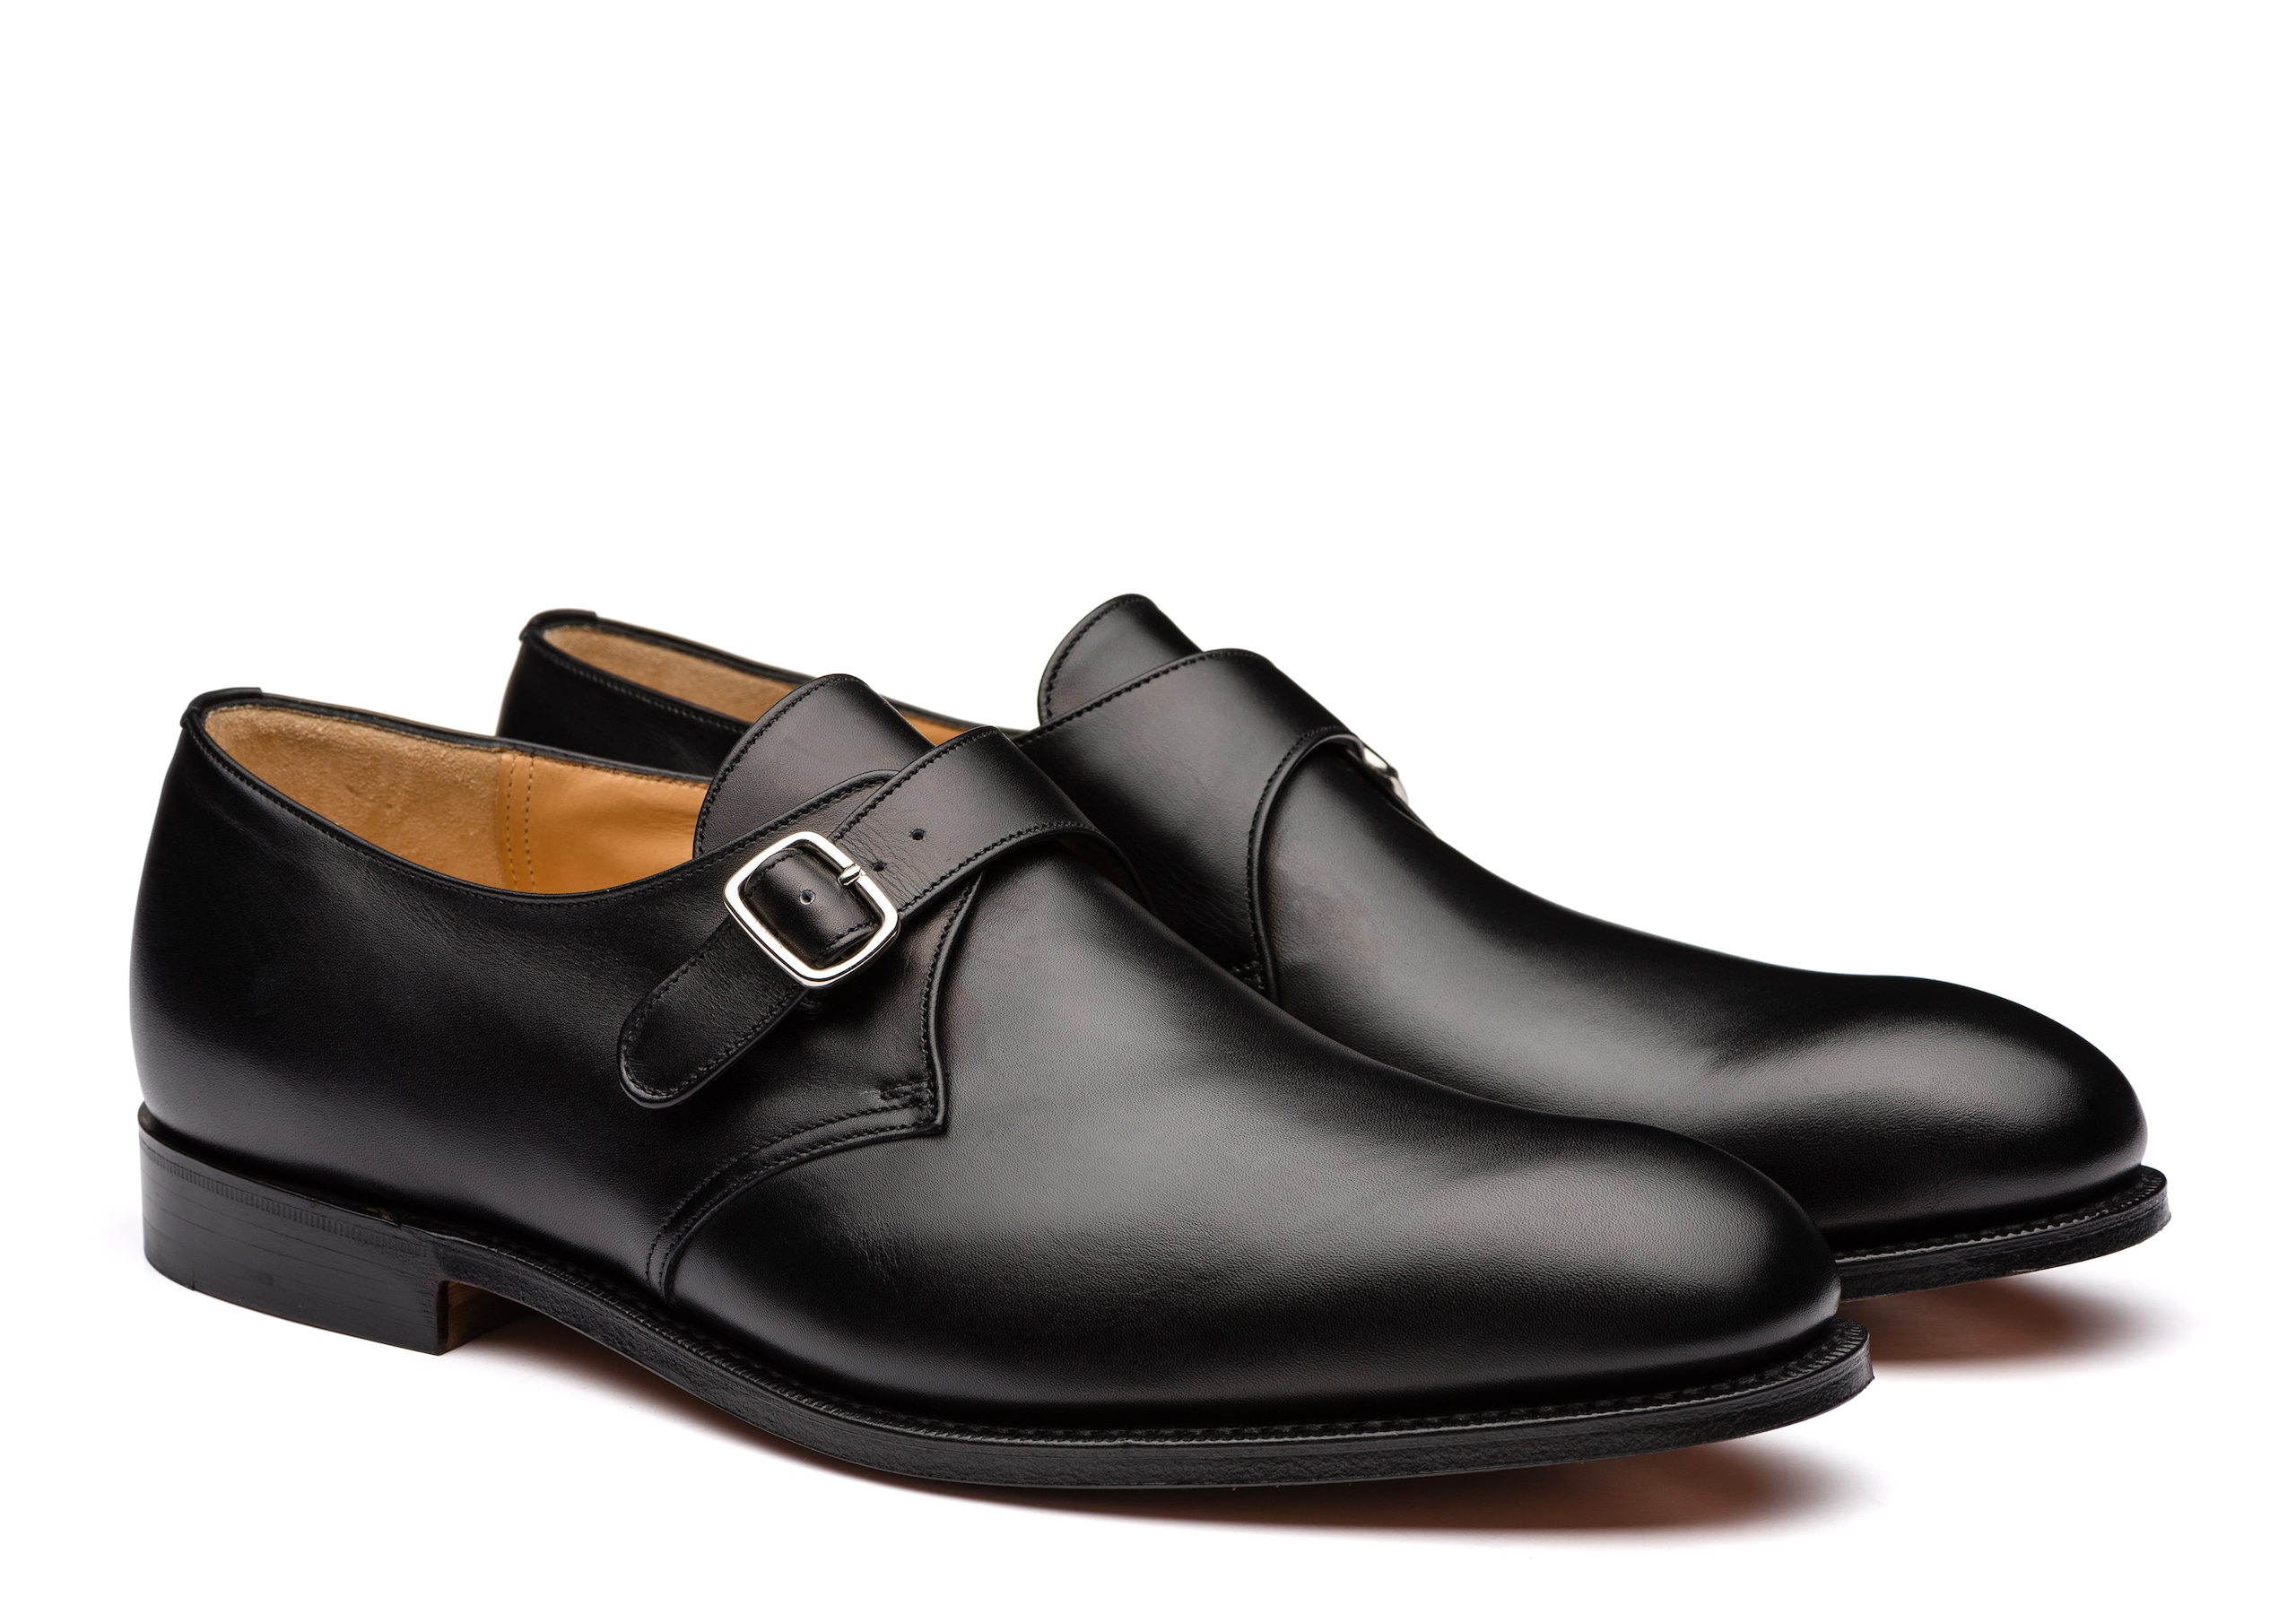 Becket 173 Church's Calf Leather Monk Strap Black